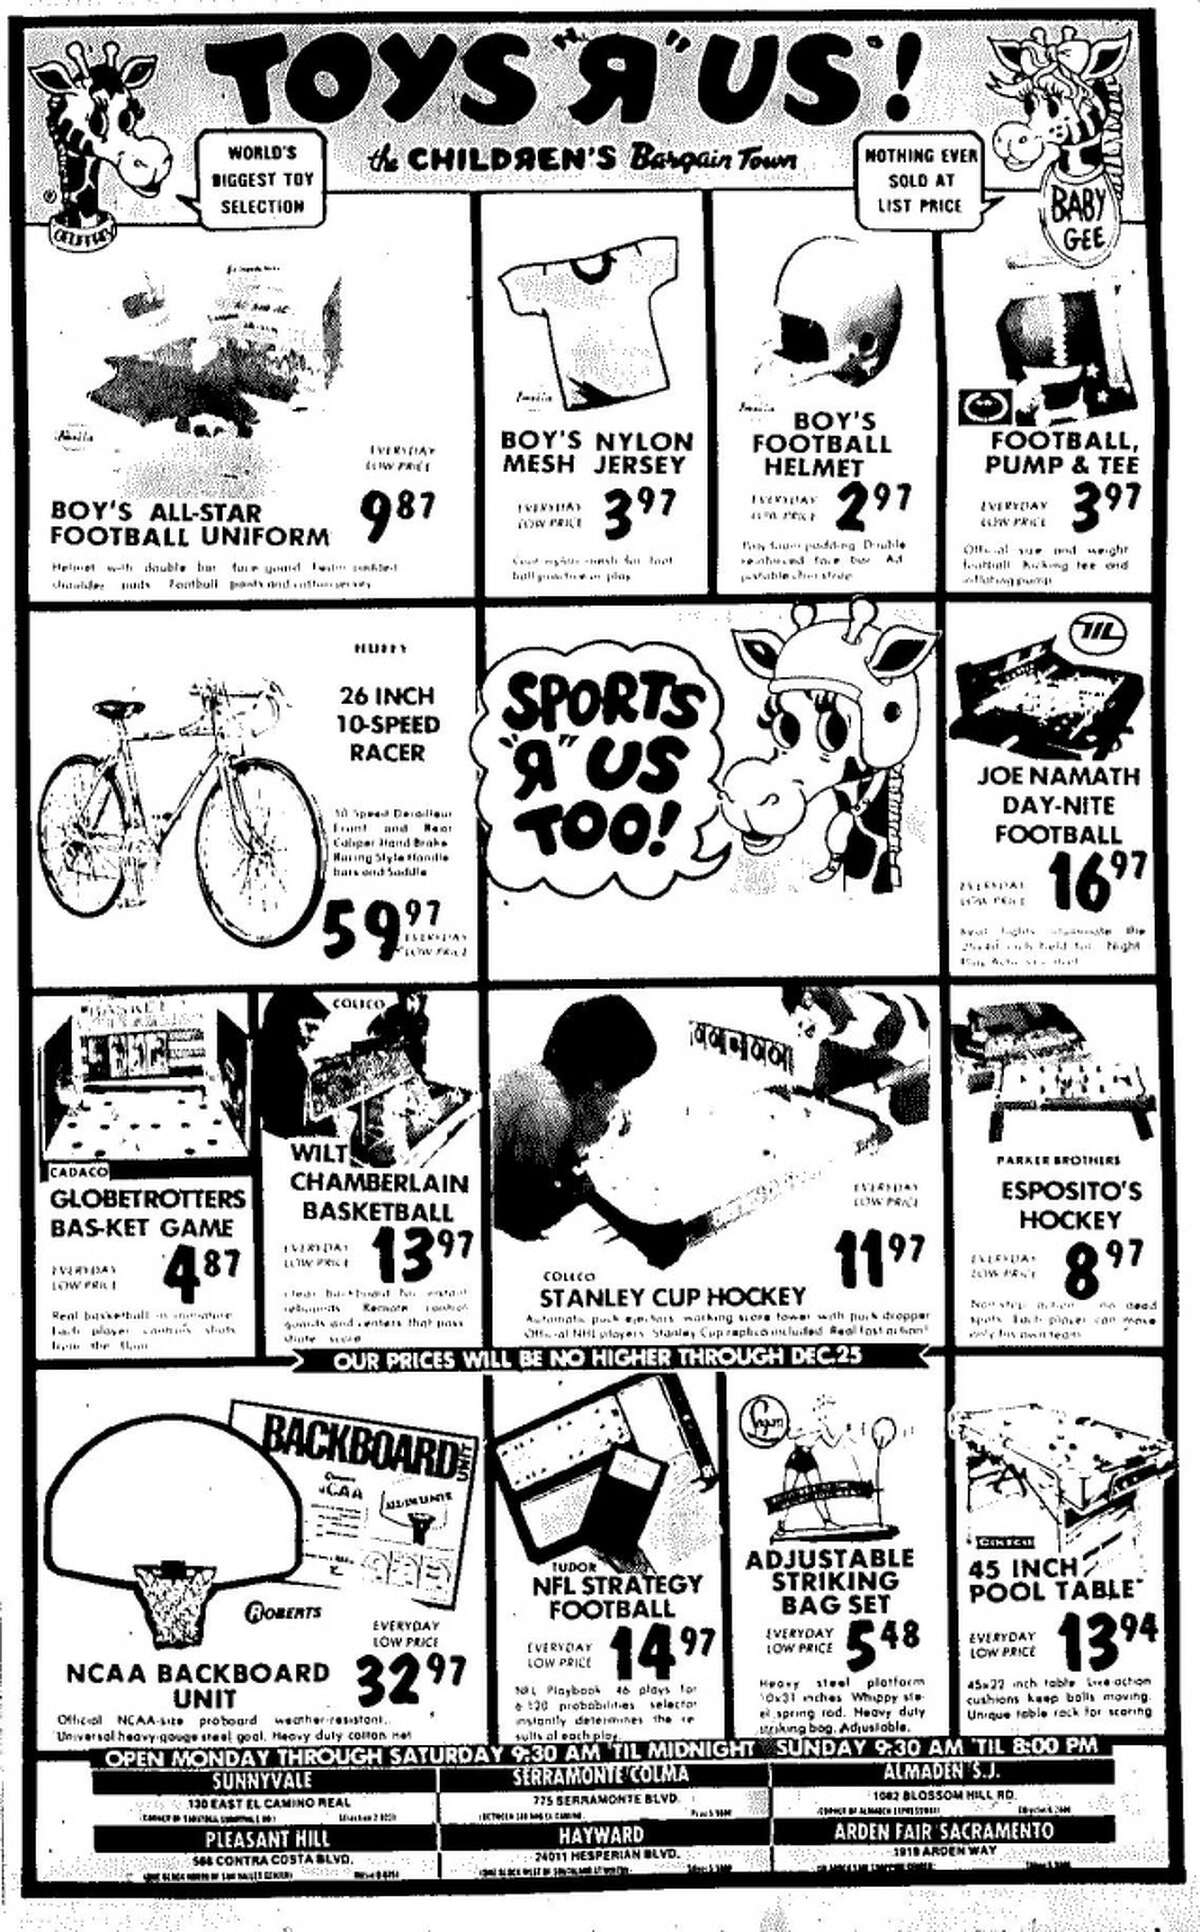 Toys R Us ad from Black Friday in 1973.